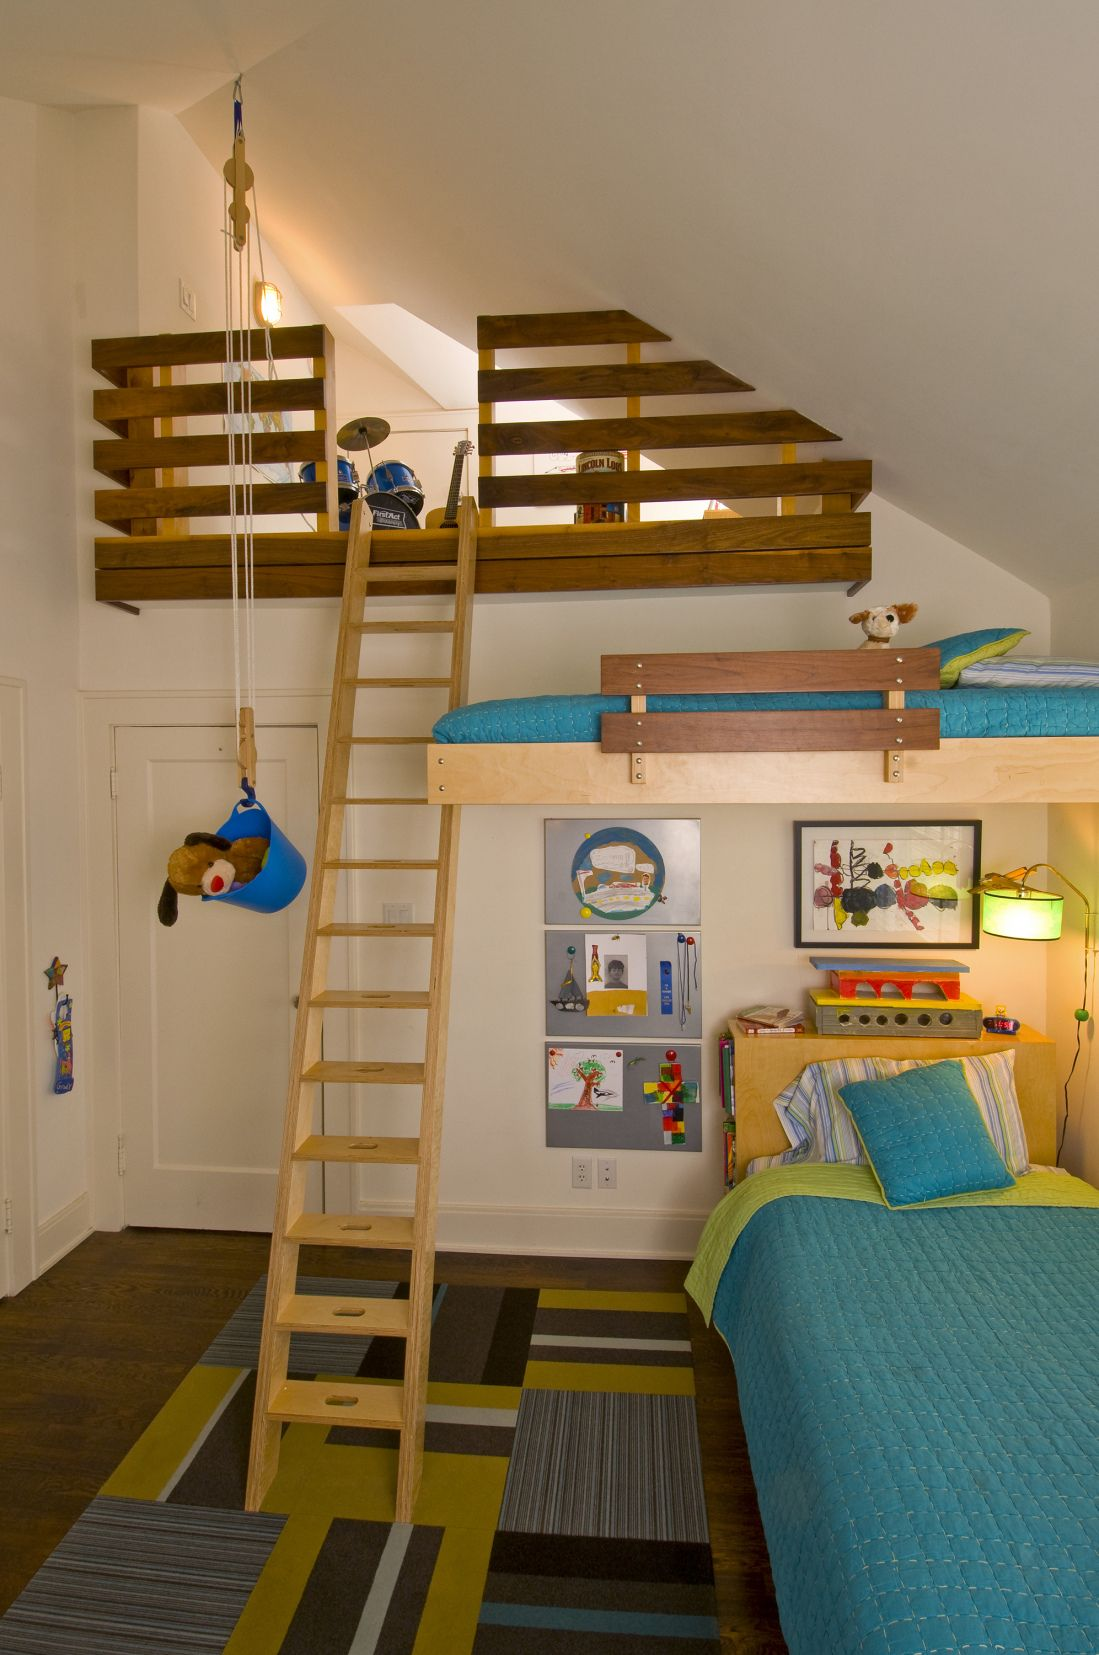 55 Cool Things For Kids Rooms Ideas To Decorate Bedroom Check